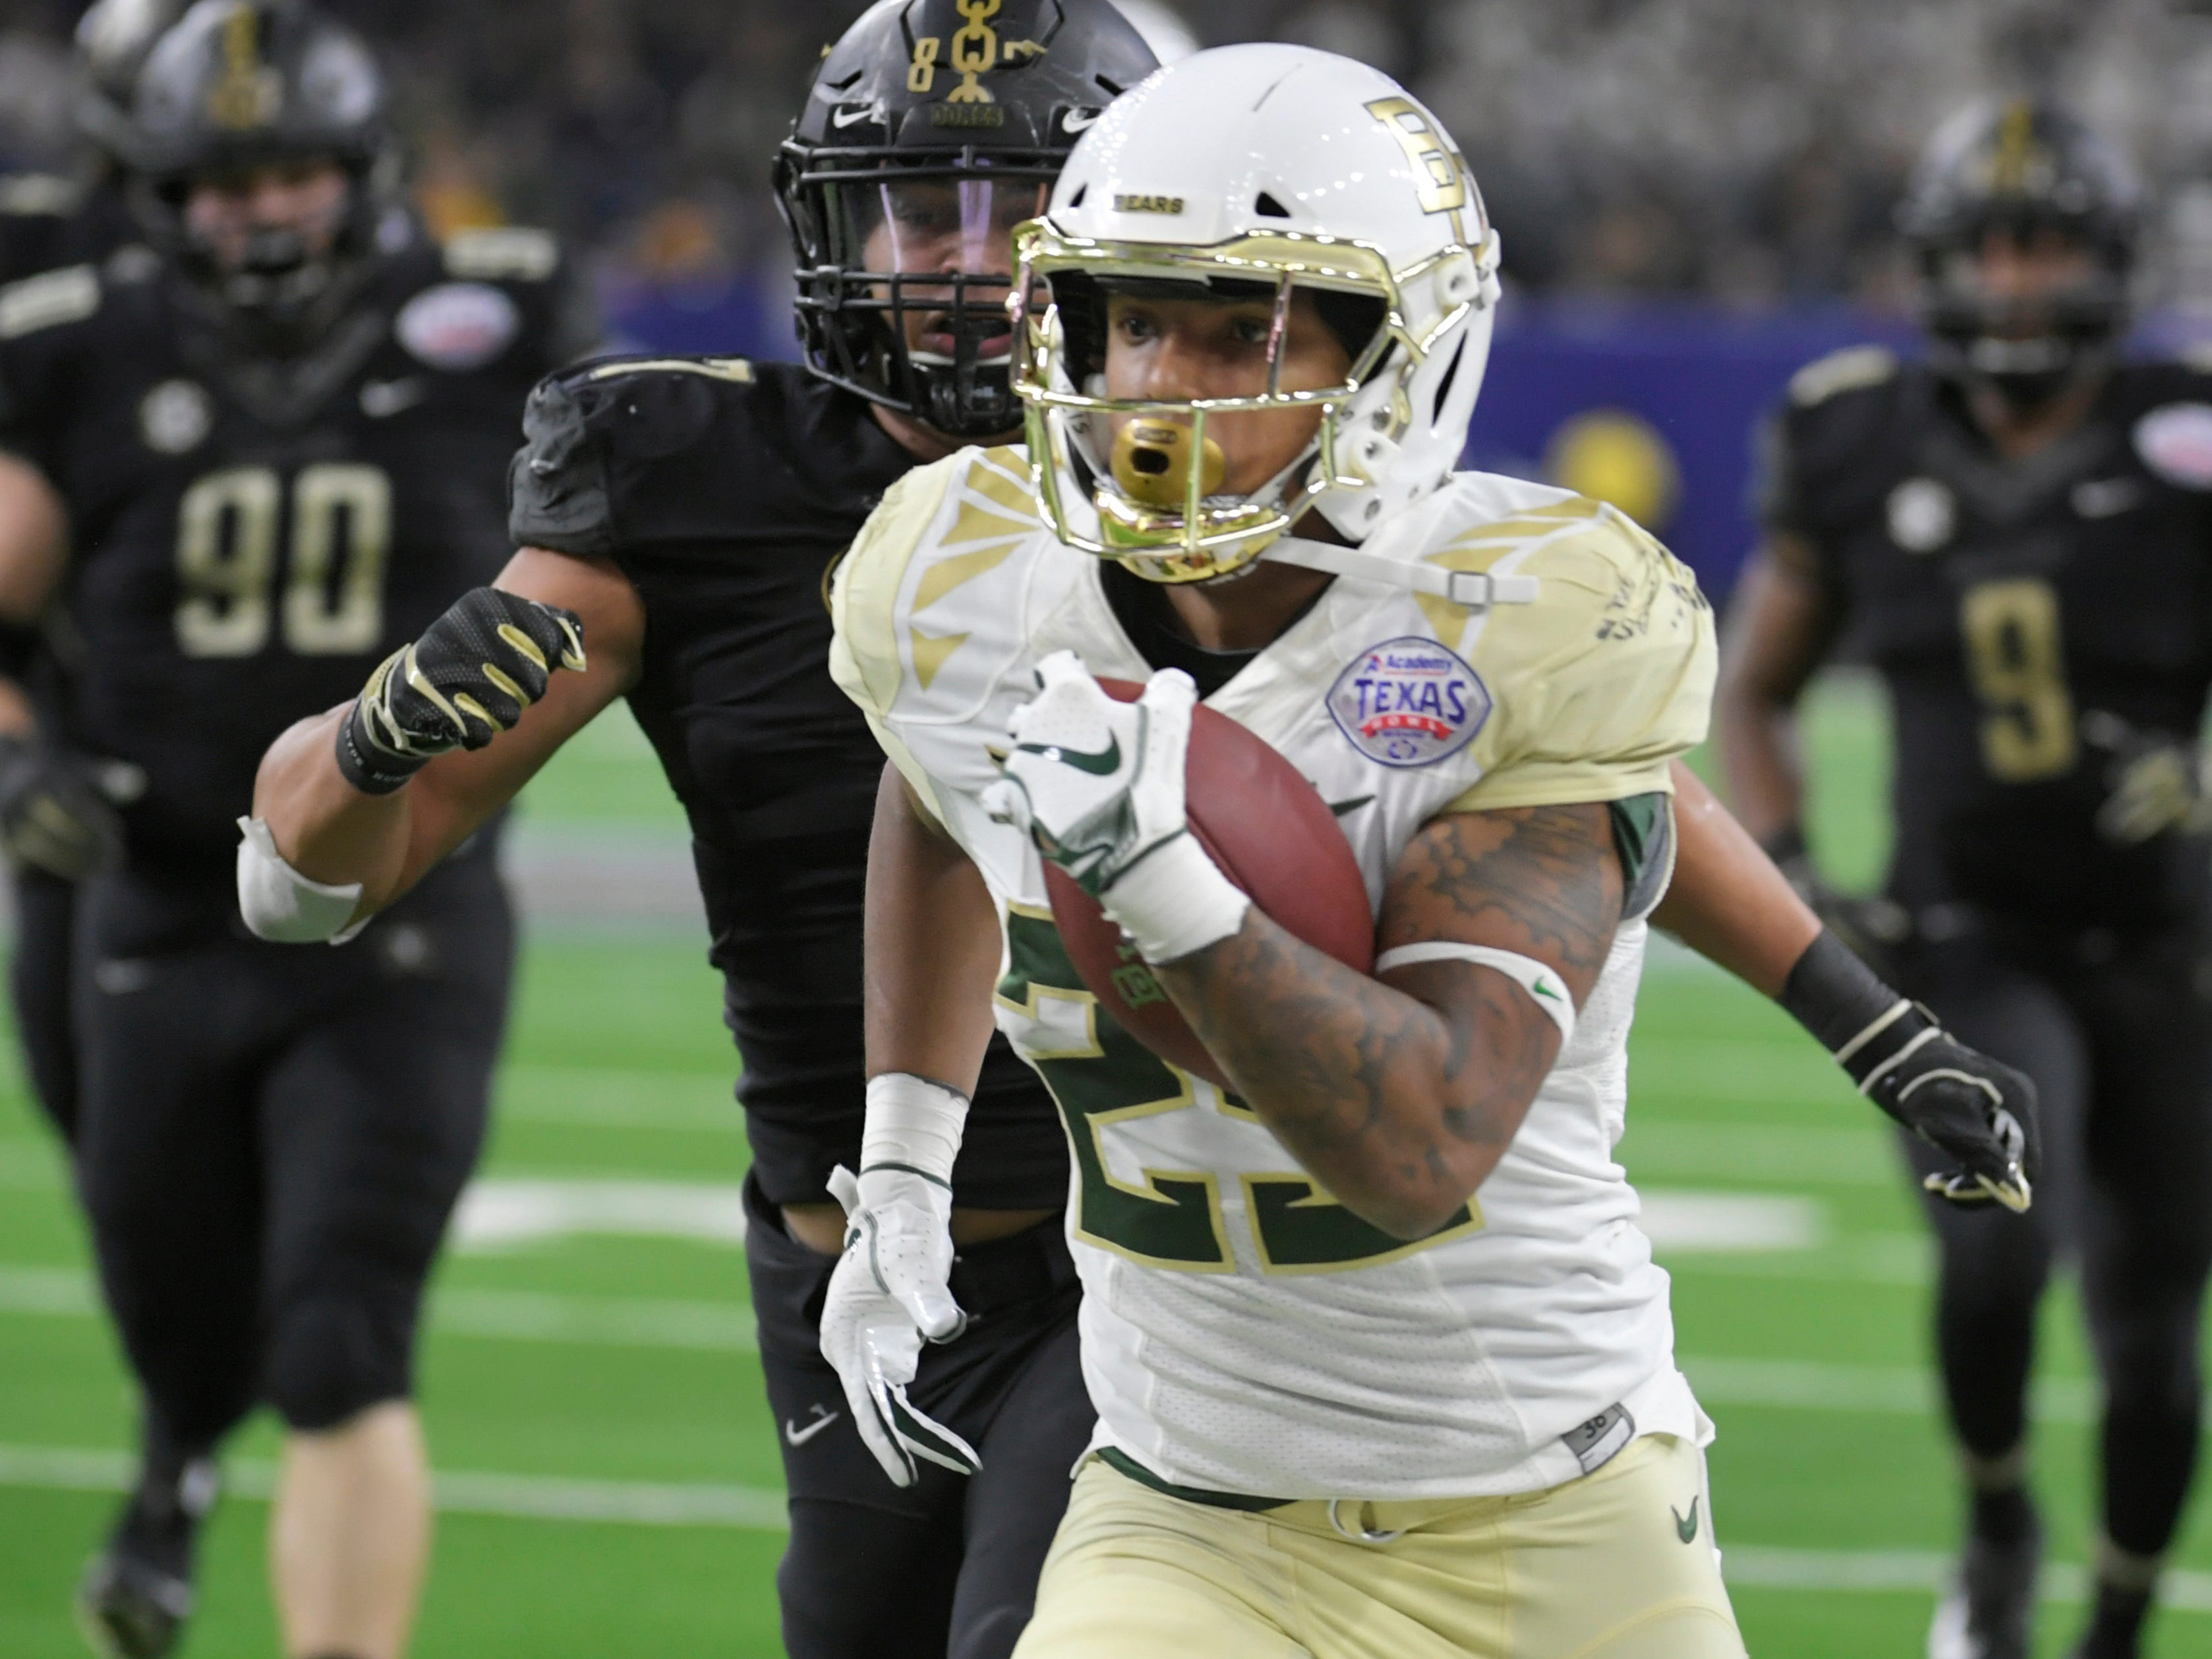 Baylor Bears running back Trestan Ebner (25) runs for a touchdown in the third quarter during the Academy Sports + Outdoors Texas Bowl at NRG Stadium in Houston on Thursday, Dec. 27, 2018.